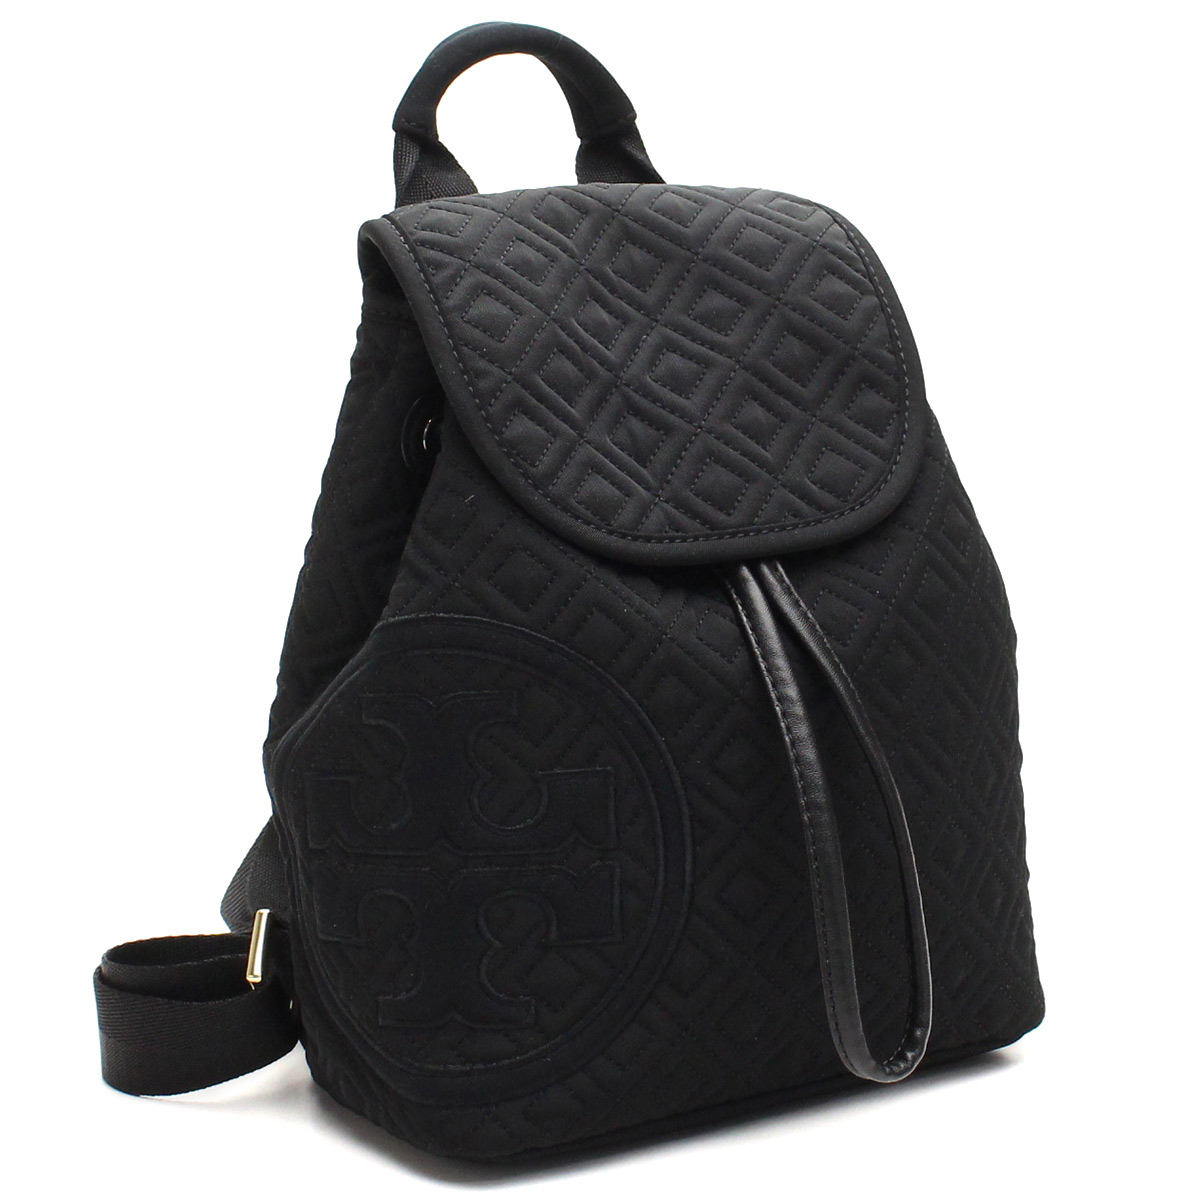 275222c3eb9d Bighit The total brand wholesale  Tory Burch (TORY BURCH) PENN QUILTED  backpack 41159566-001 BLACK black( taxfree send by EMS authentic A brand new  item ) ...